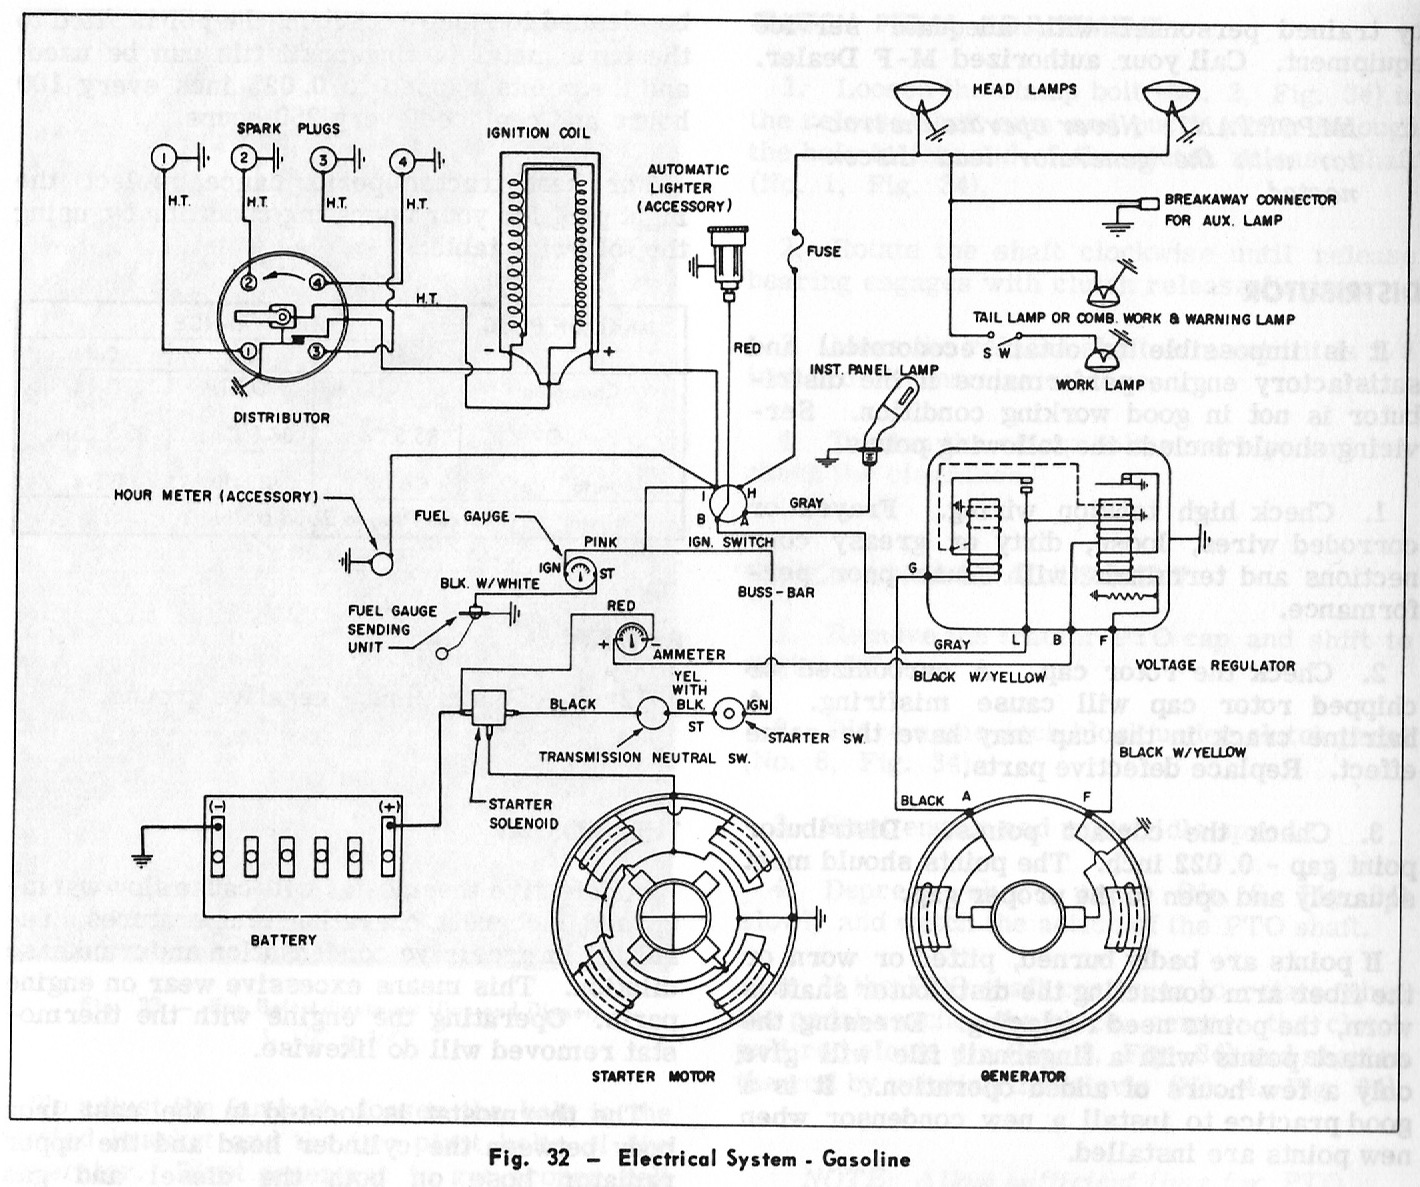 Mf 65 Electrical Wiring Diagram. 11 most mf electrical wiring diagram  pictures tone tastic. new massey ferguson 175 wiring diagram mf 50 wiring.  mf 165 electrical question yesterday 39 s tractors. massey2002-acura-tl-radio.info